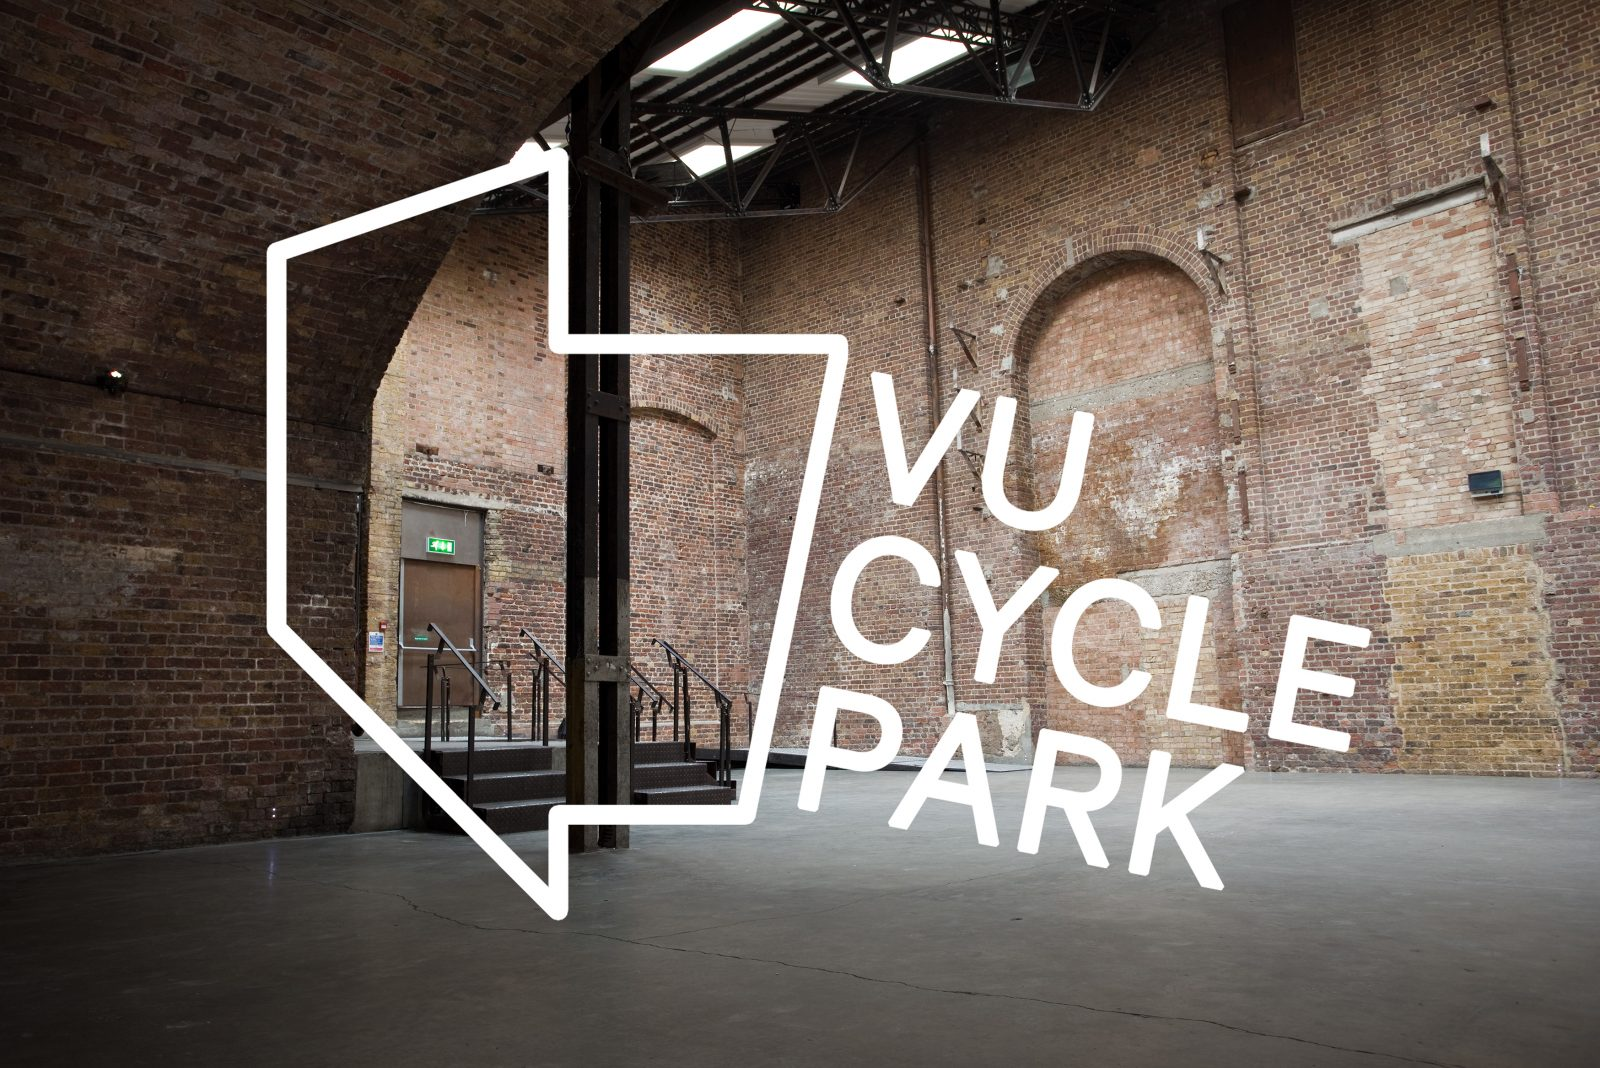 Discount for NTIA member staff parking at VU Cycle Park